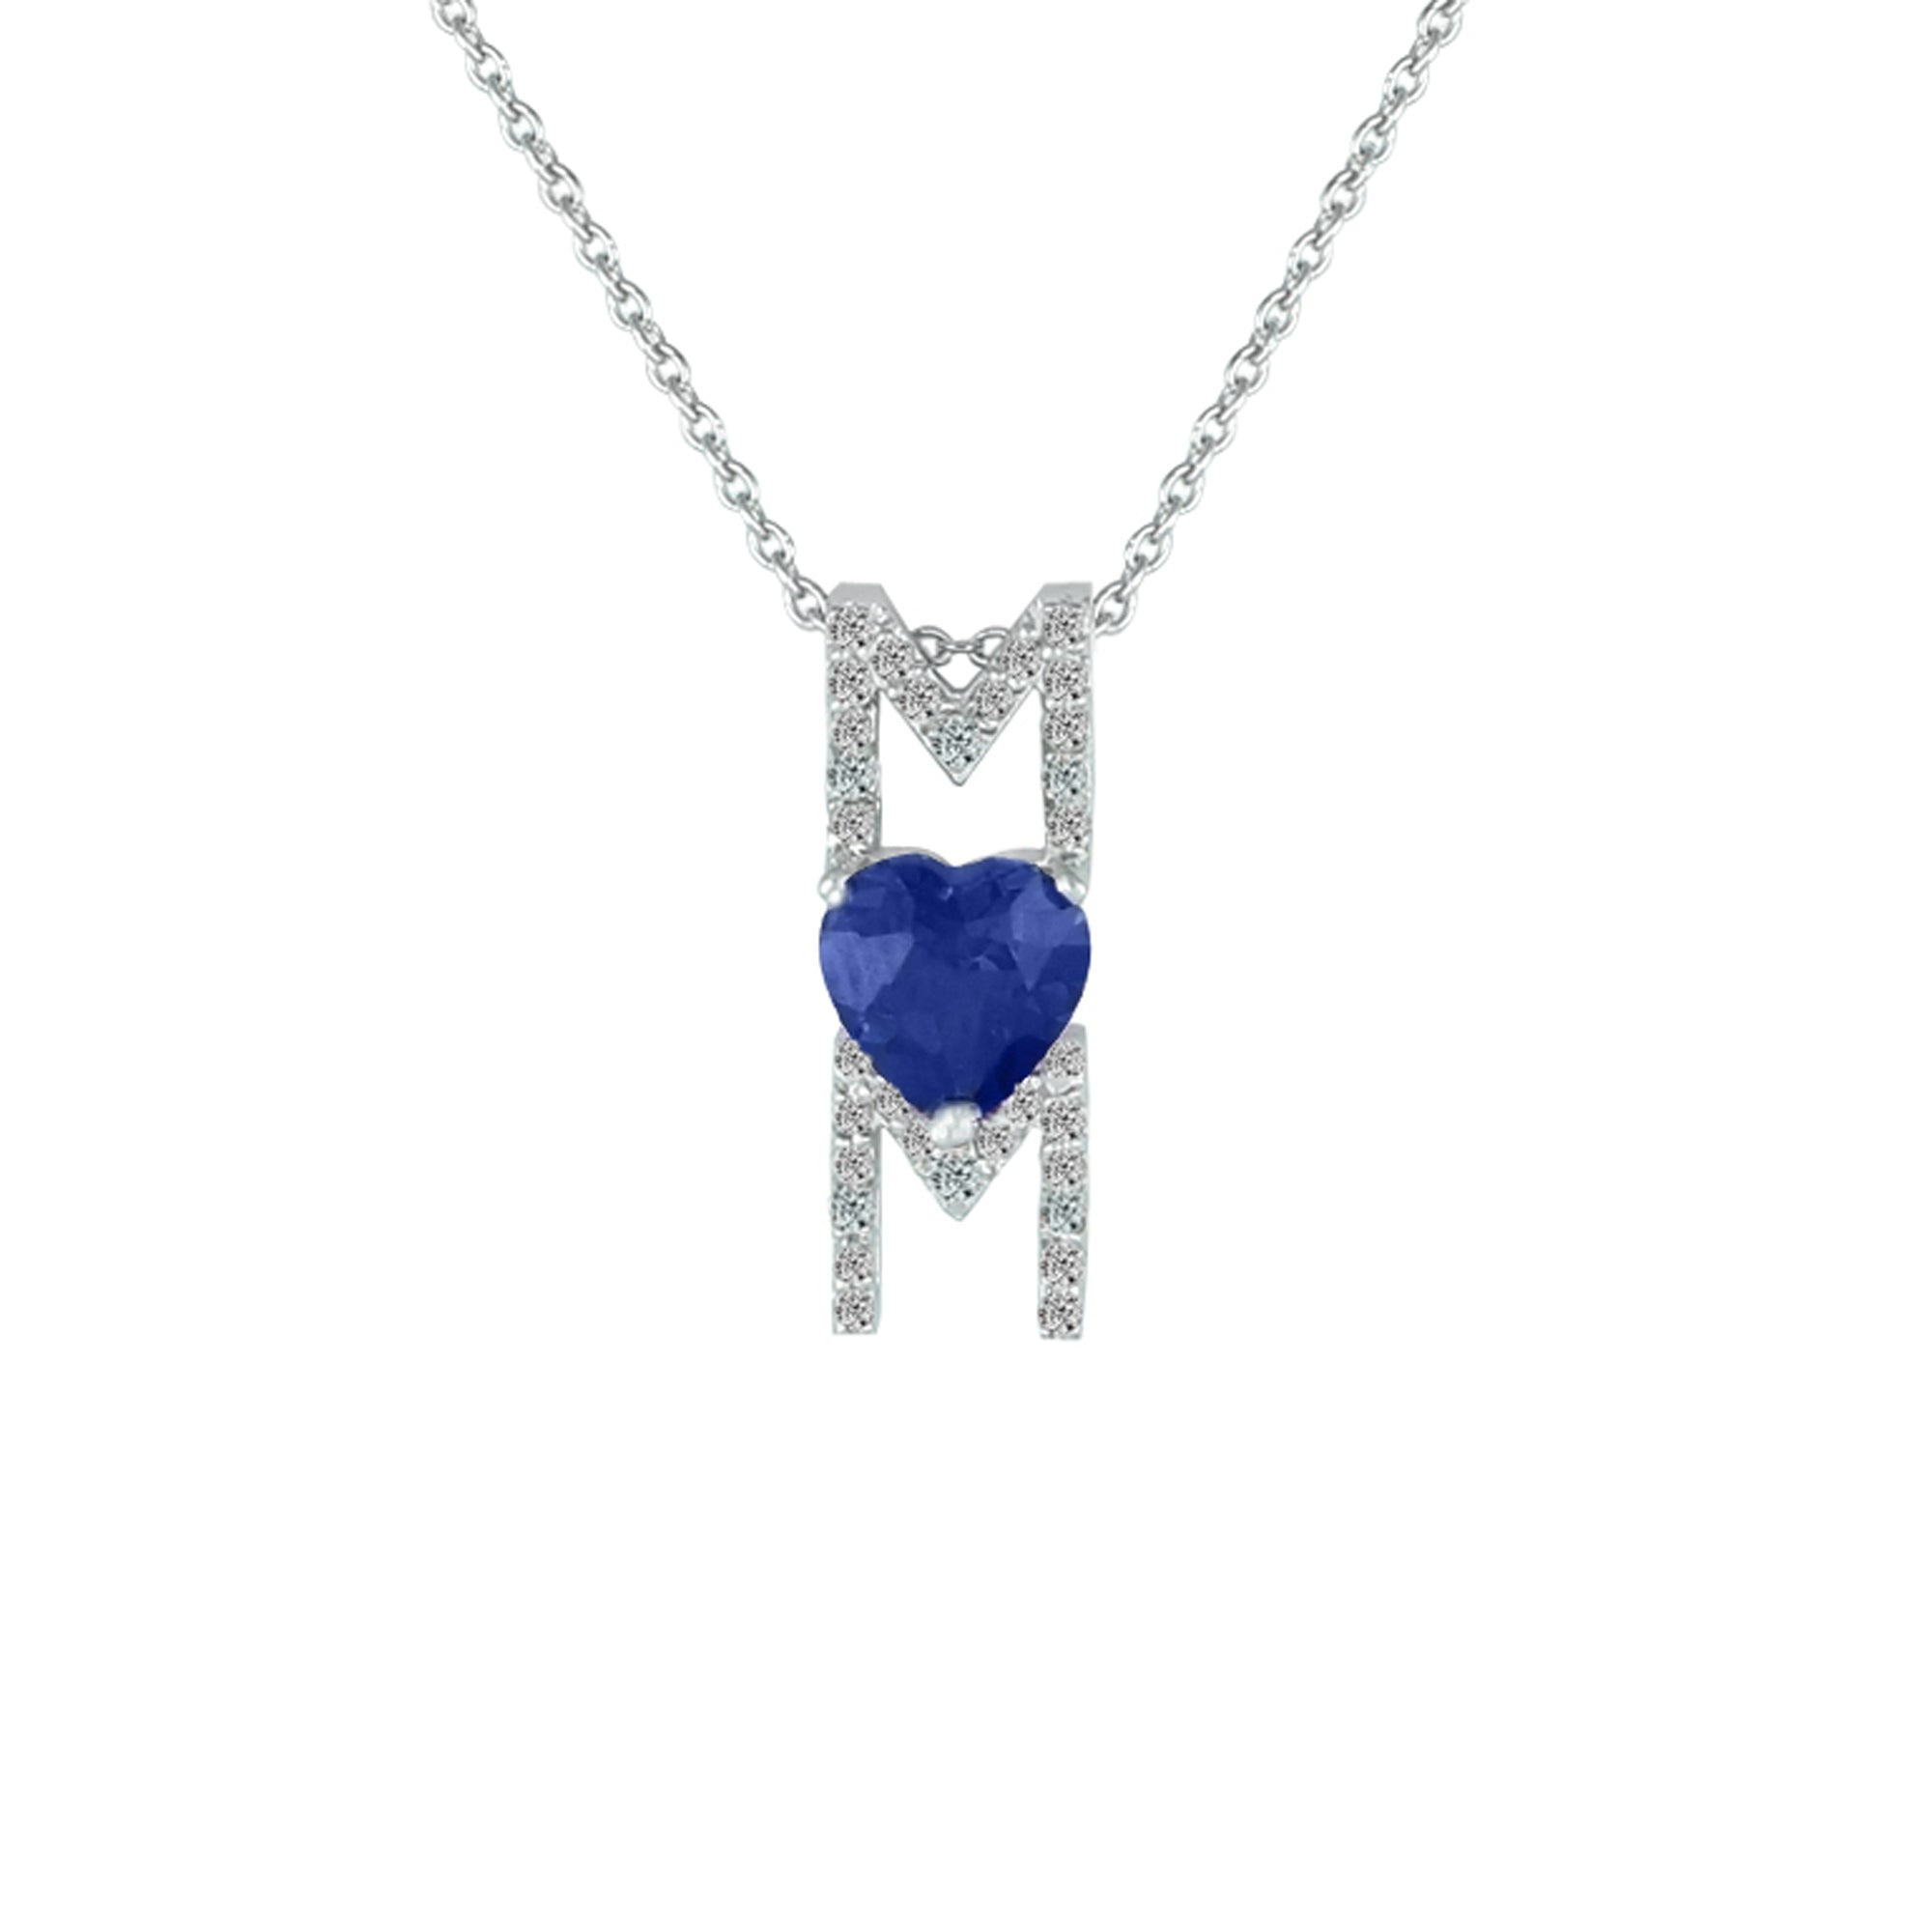 il necklace in silver fullxfull sterling chain blue lace agate sweetheart pendant products